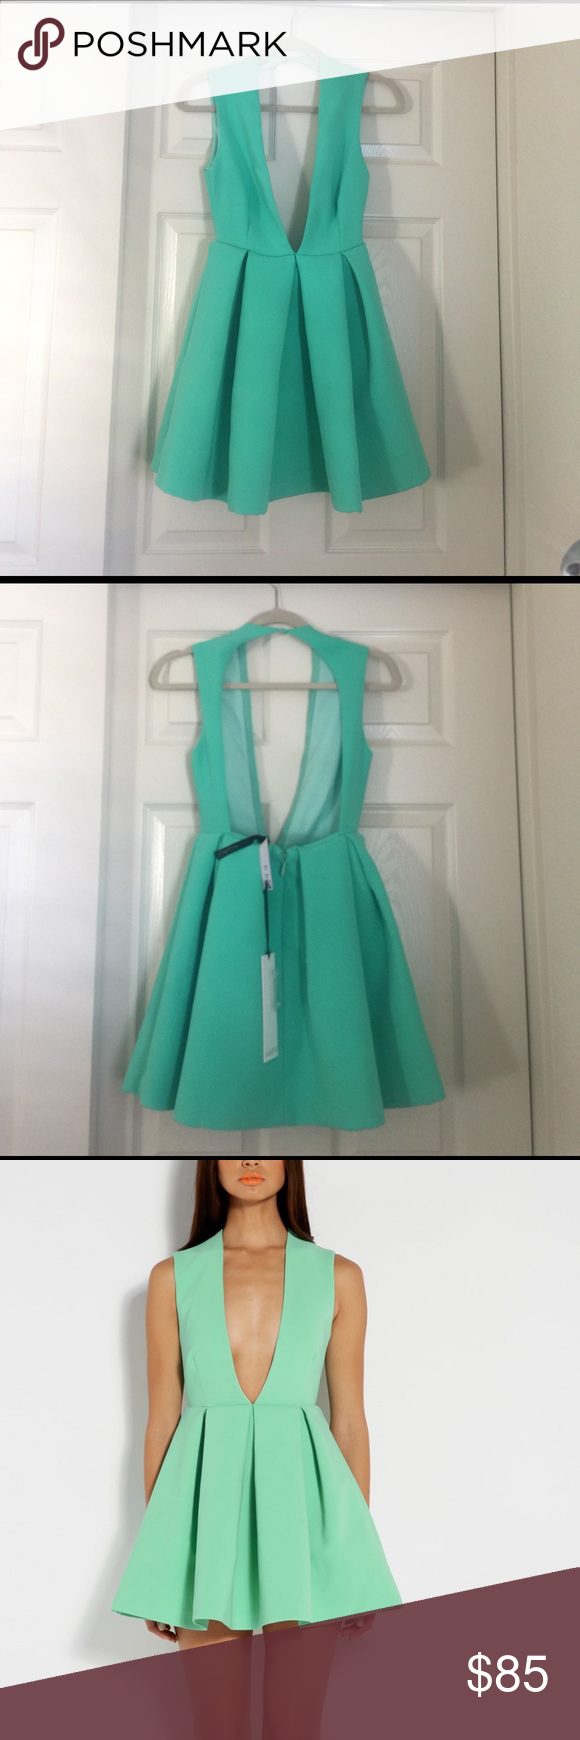 21f60596ca AqAq deep V green skater dress Size UK 4 US 0 The Upper deep green V neck  plunge backless skater mini dress features a pleated skirt with a deep V  neckline.